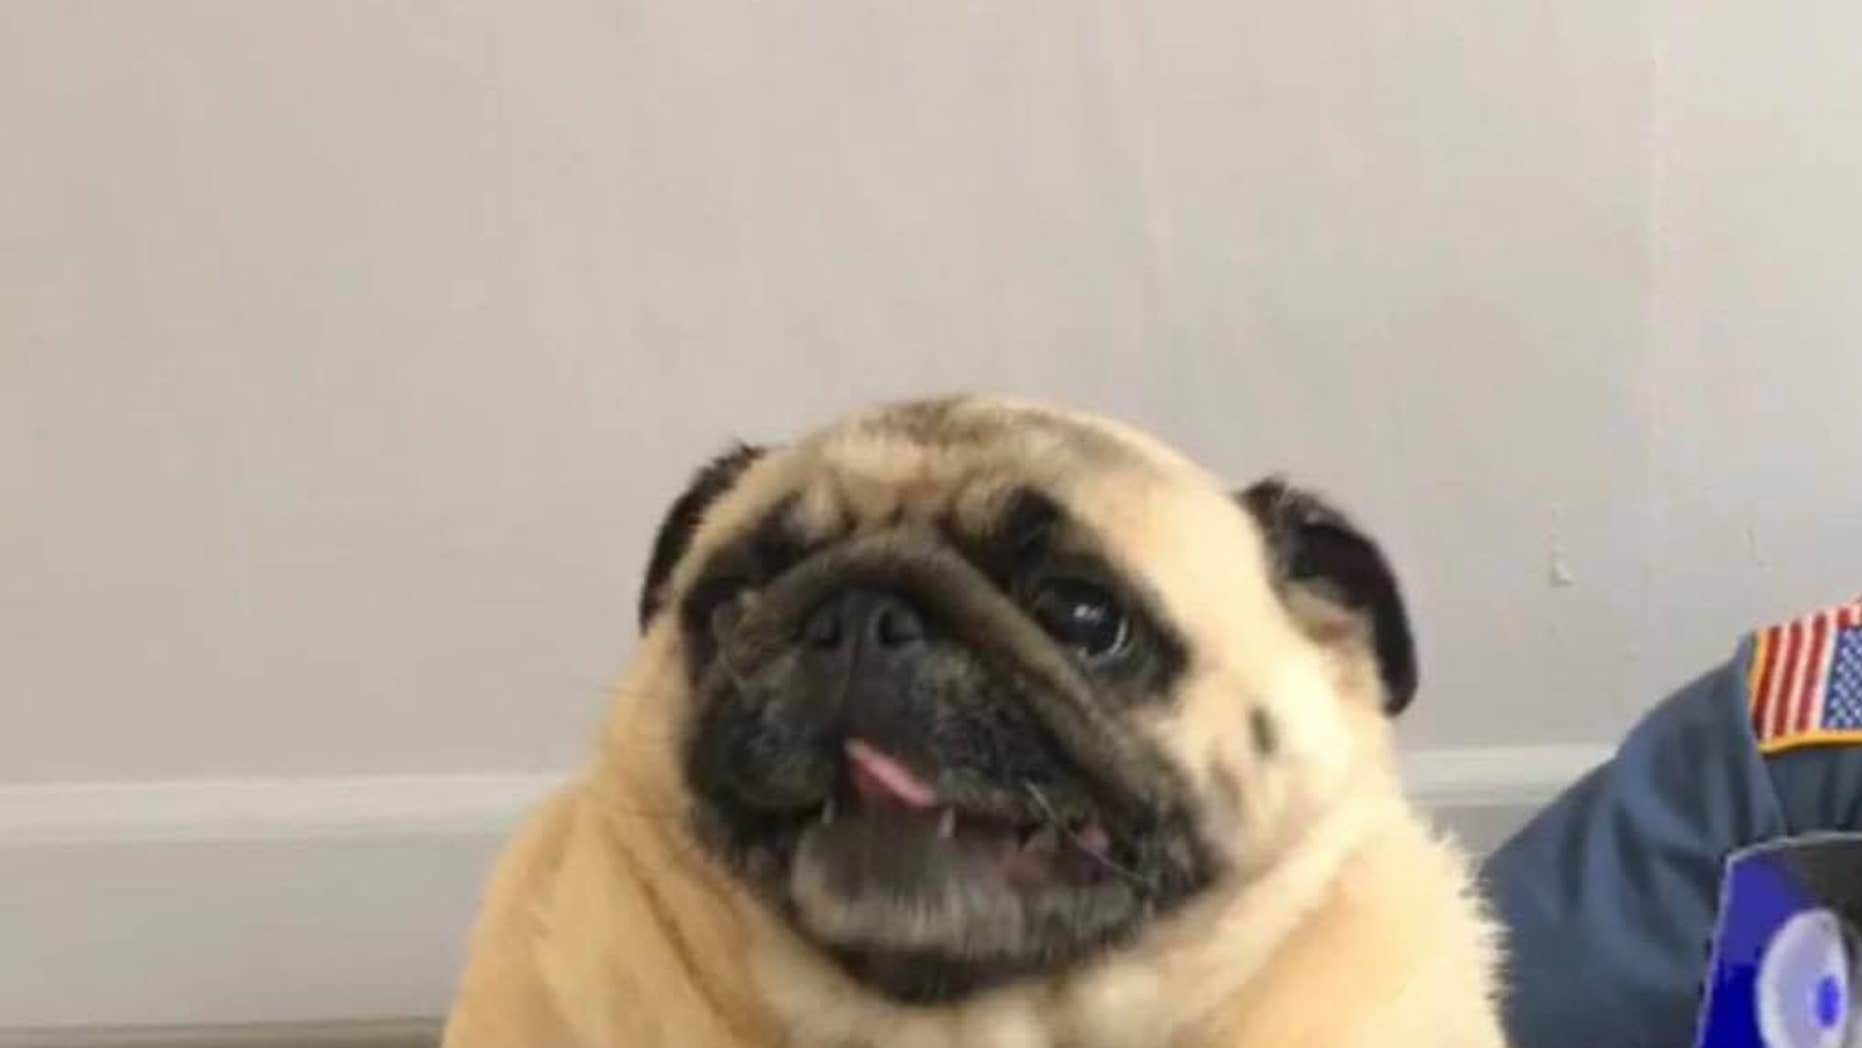 Bean the pug returned home after her mugshot went viral.